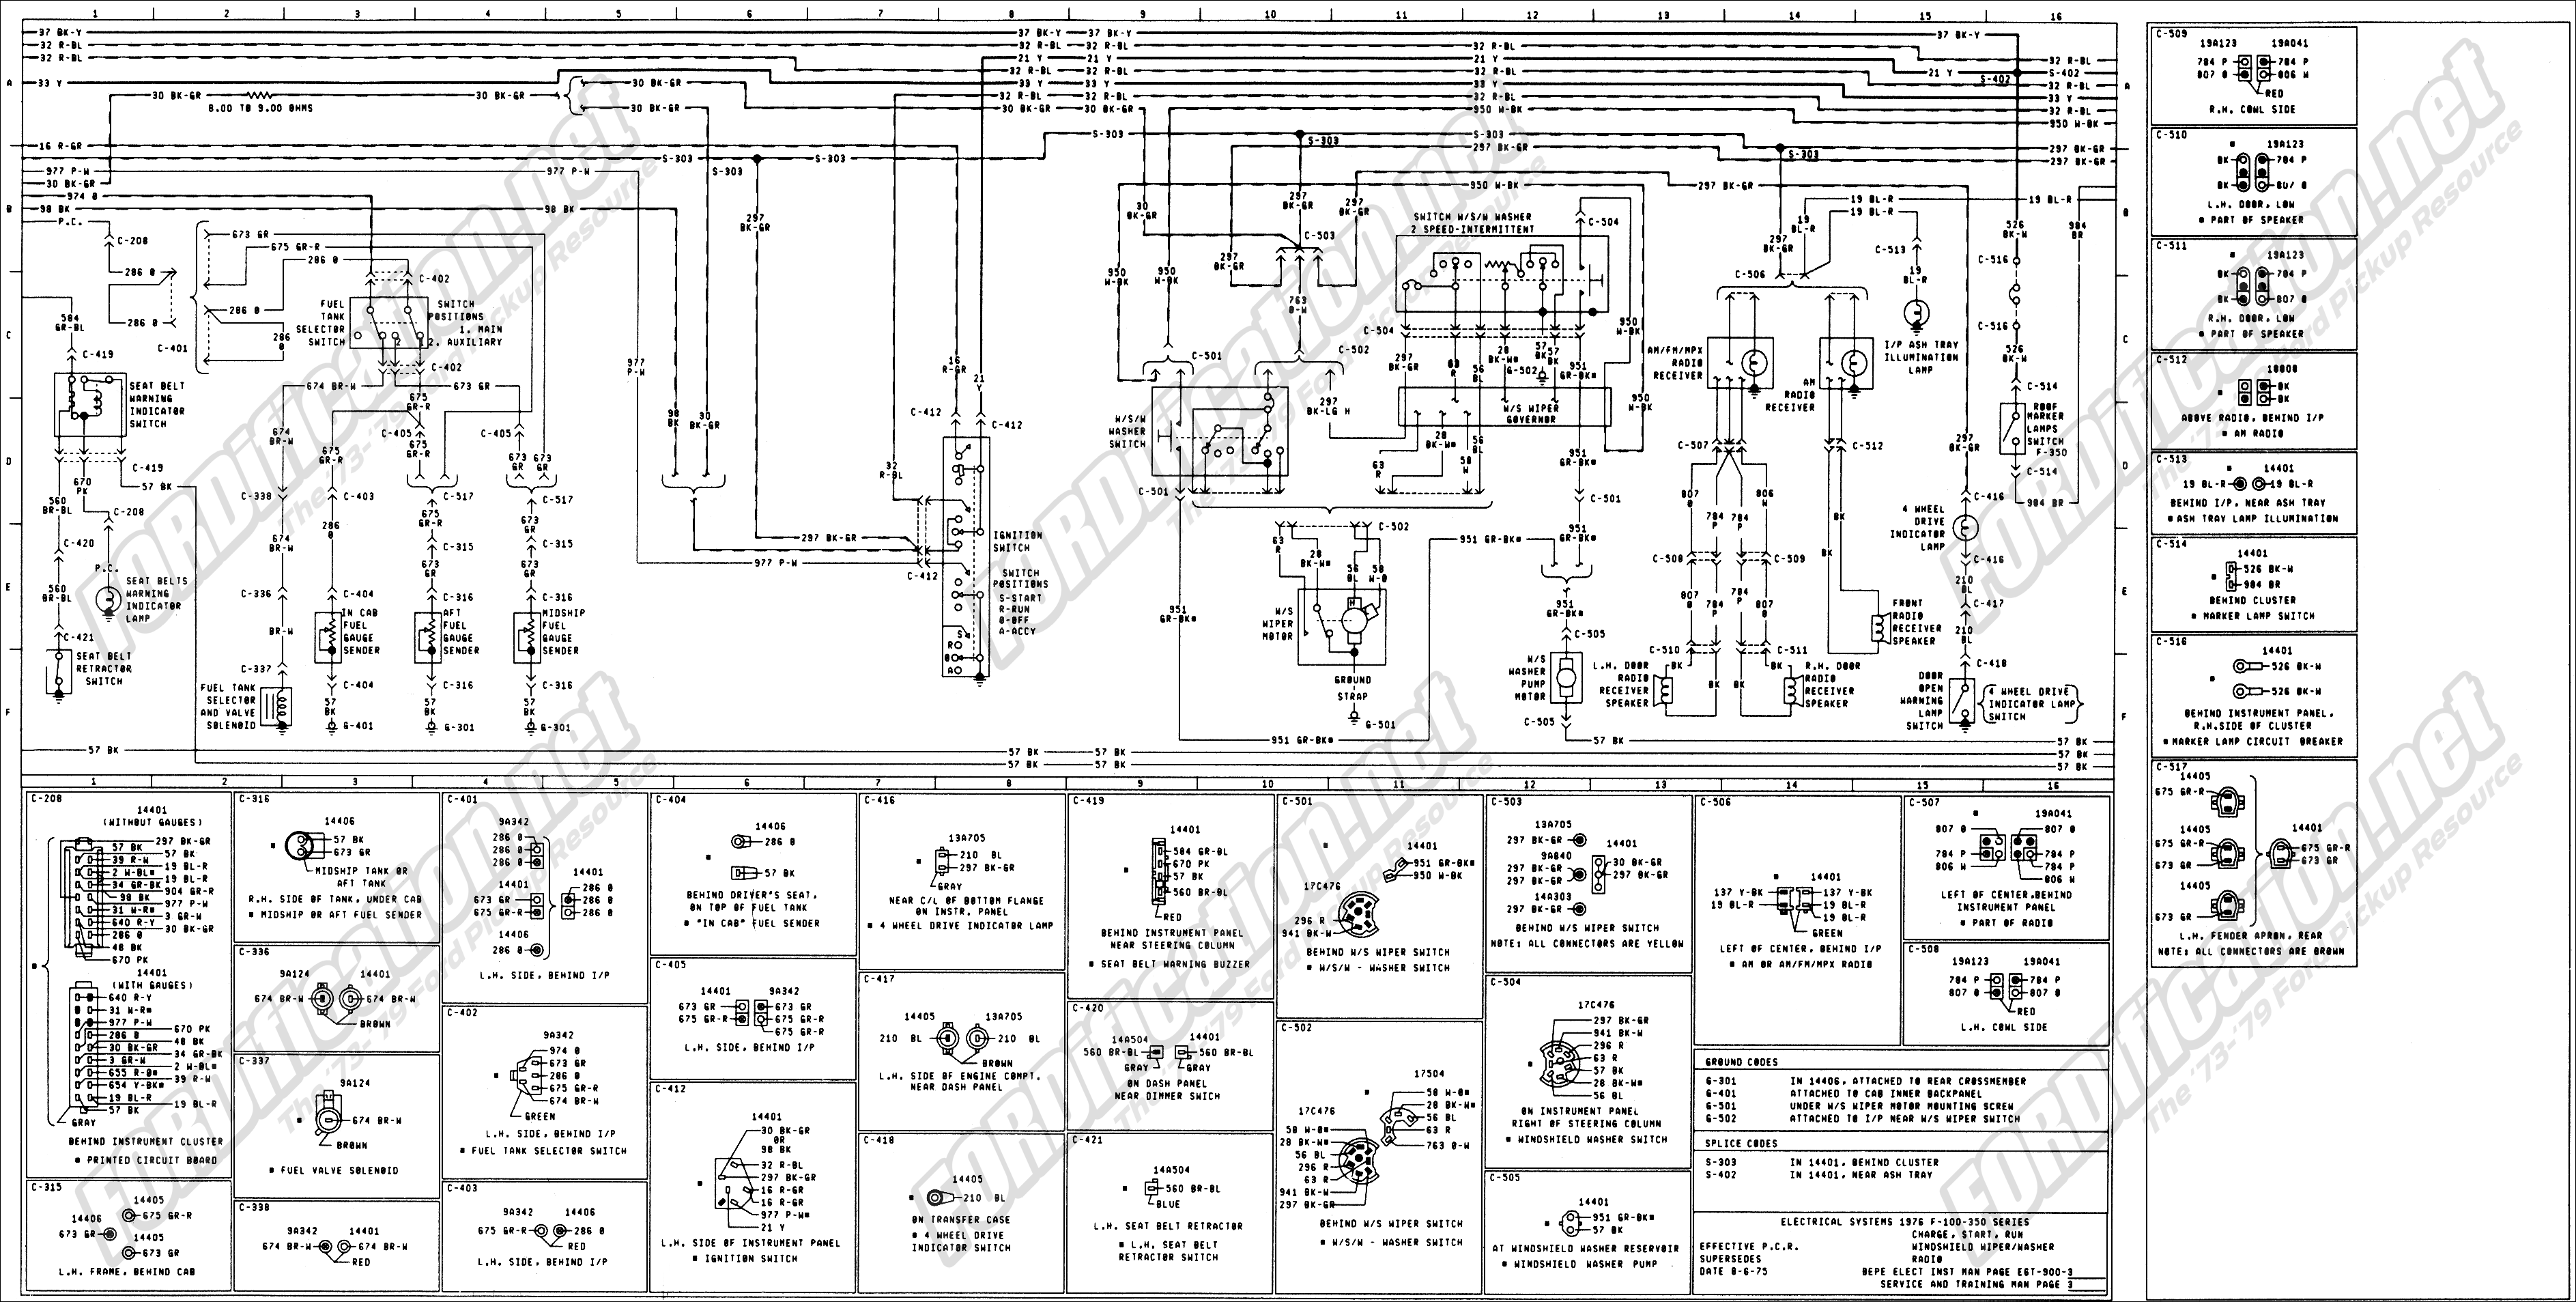 wiring_76master_3of9 1973 1979 ford truck wiring diagrams & schematics fordification net 2001 ford f150 wiring diagram at bakdesigns.co